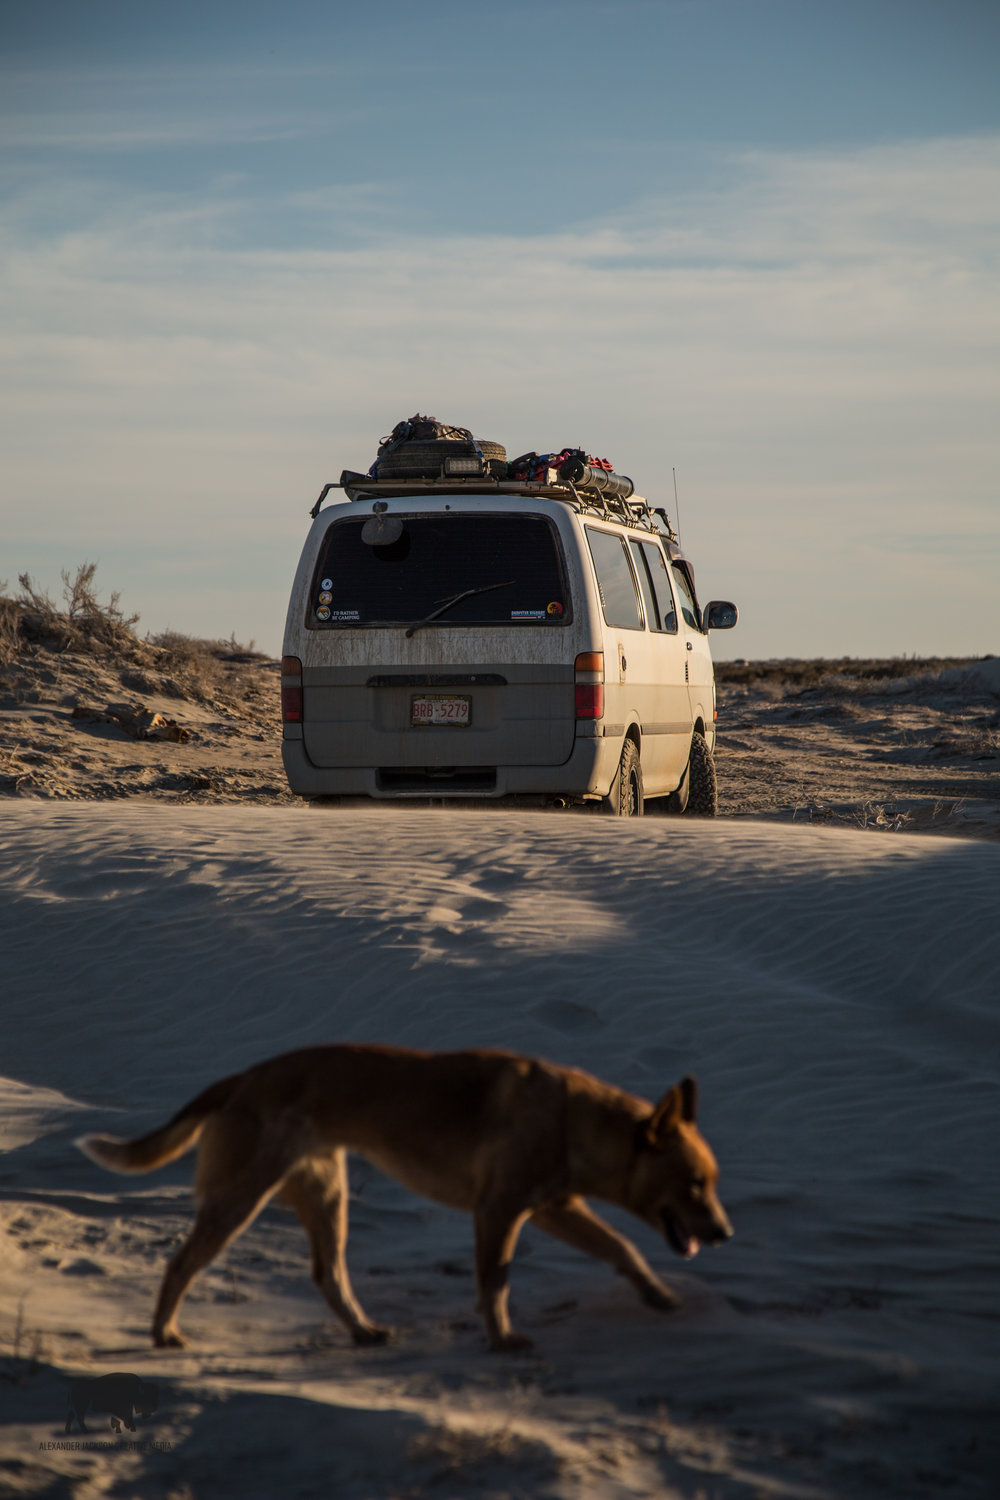 Hiding in the sand dunes outside of Guerrero Negro for the night. #Willowapproved